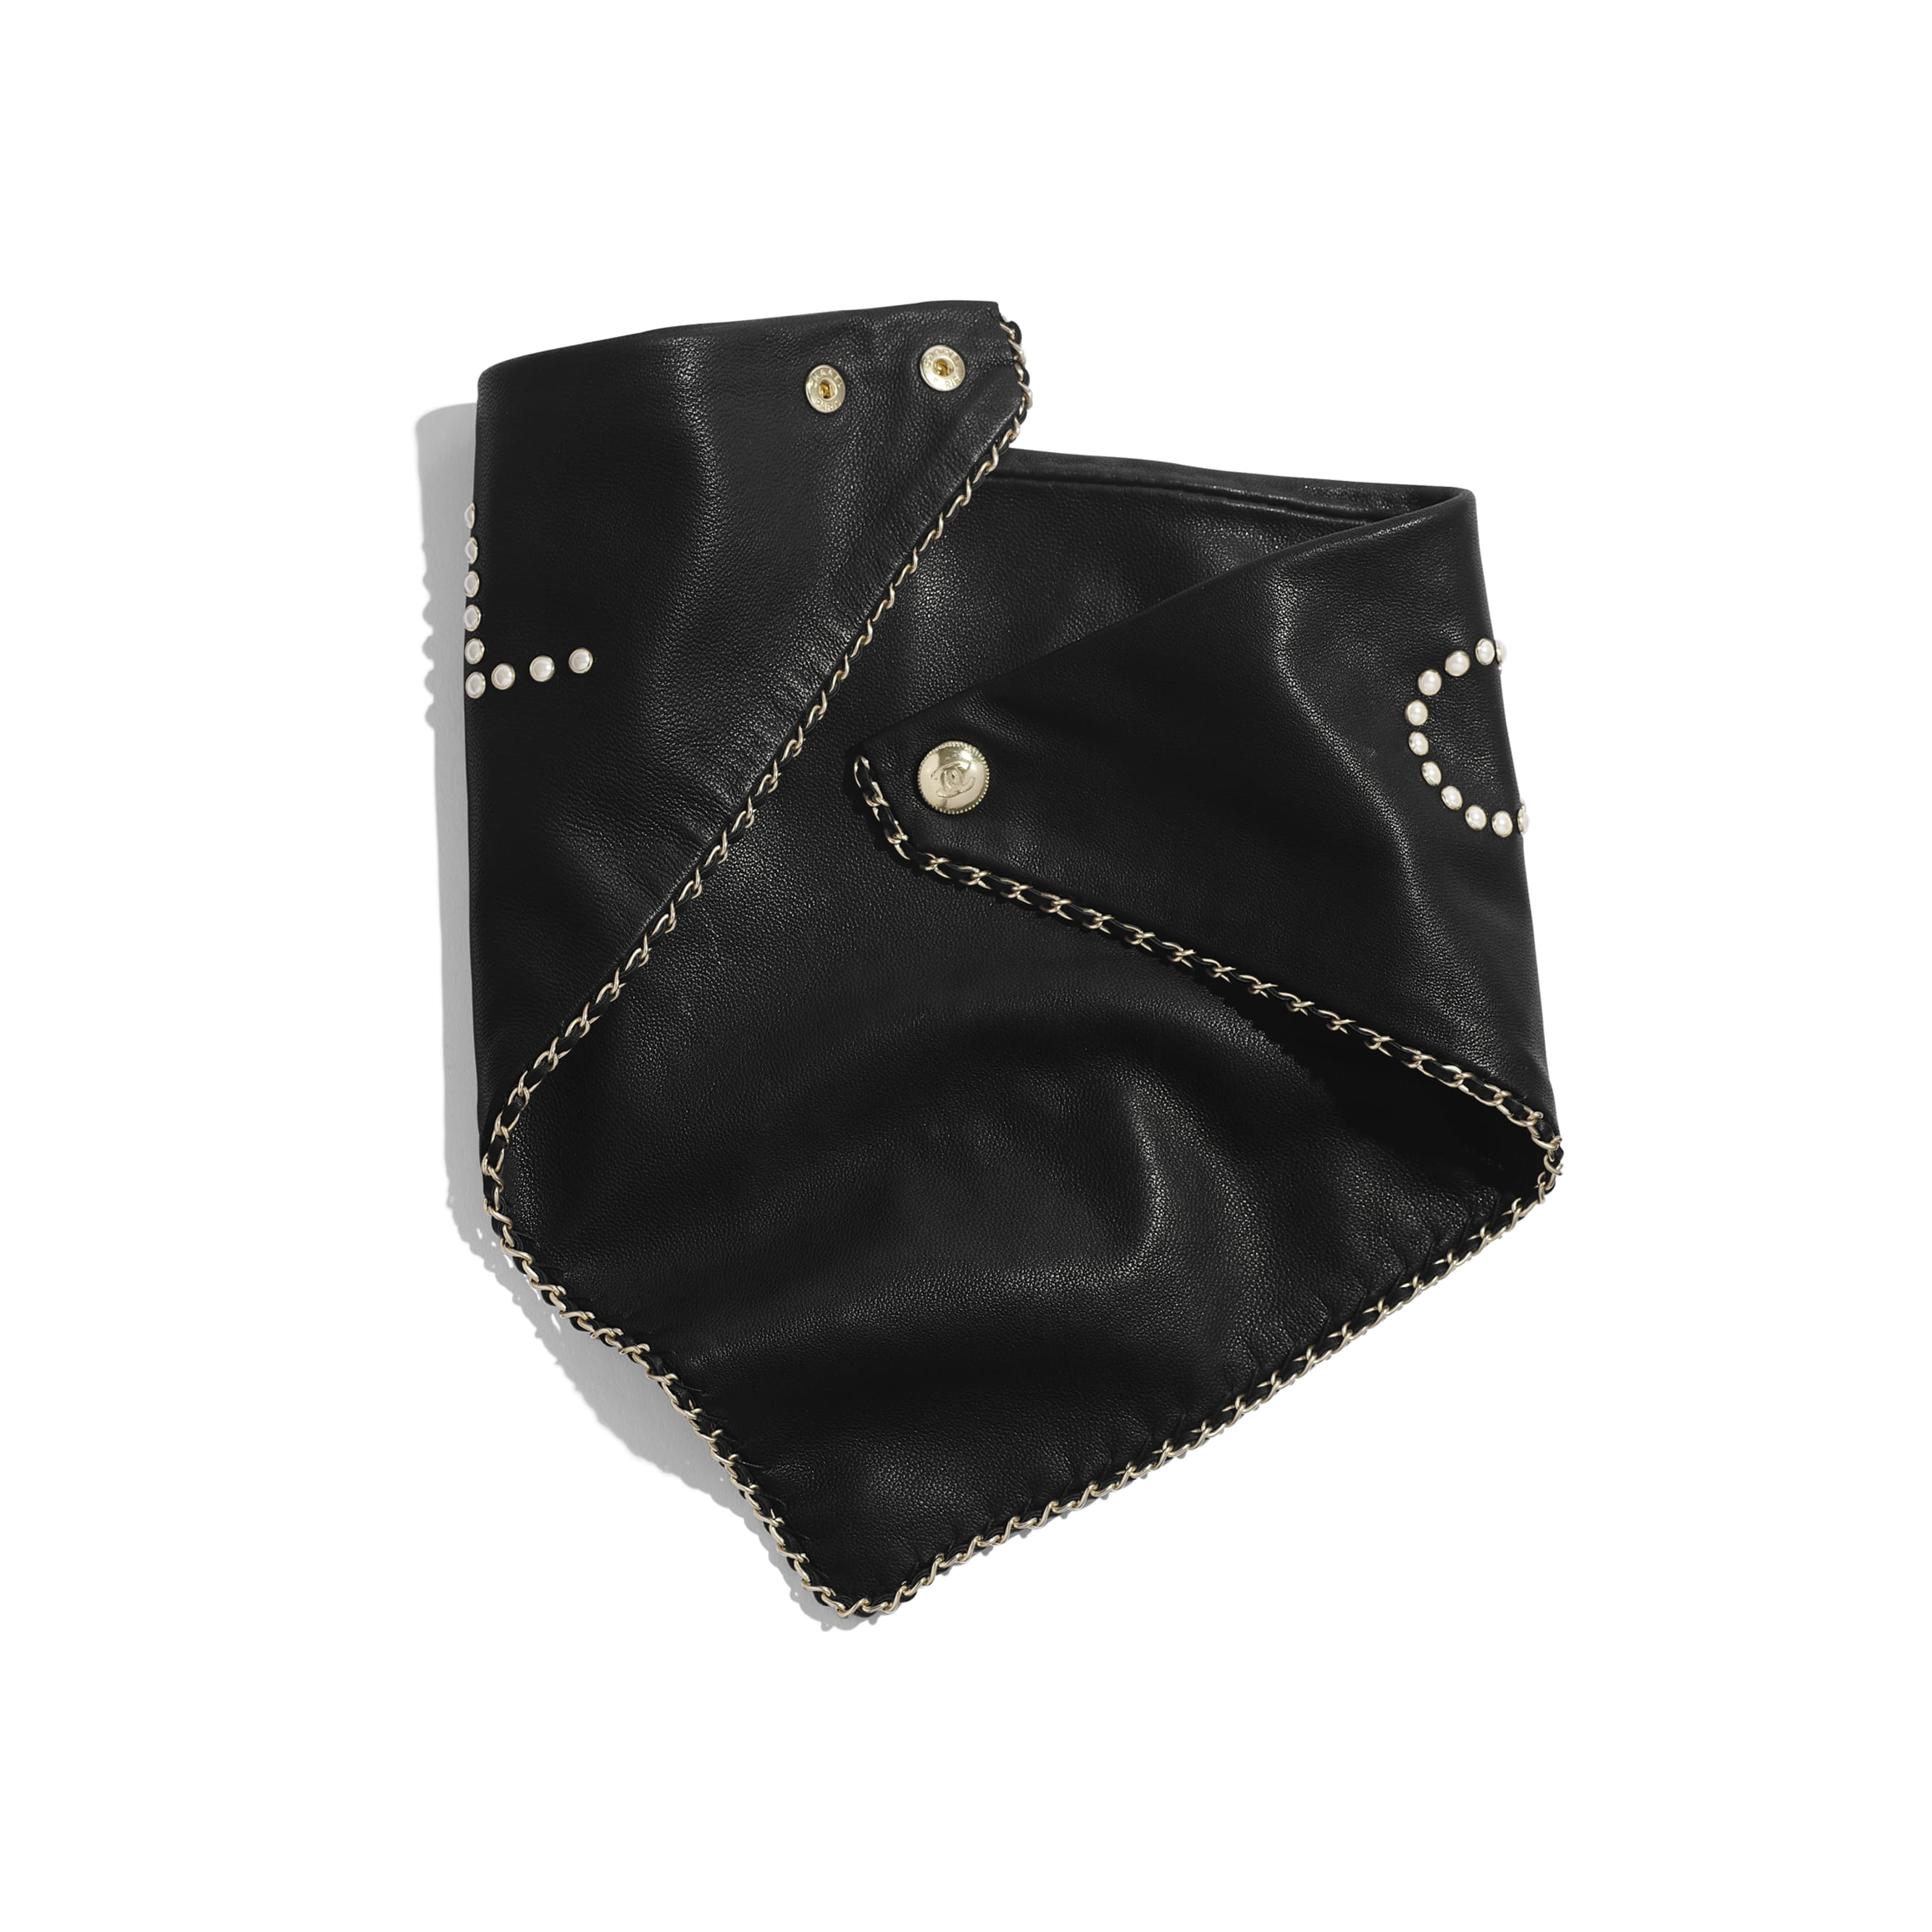 Bandana - Black & Pearly White - Glass Pearls & Gold-Tone Metal - Alternative view - see standard sized version